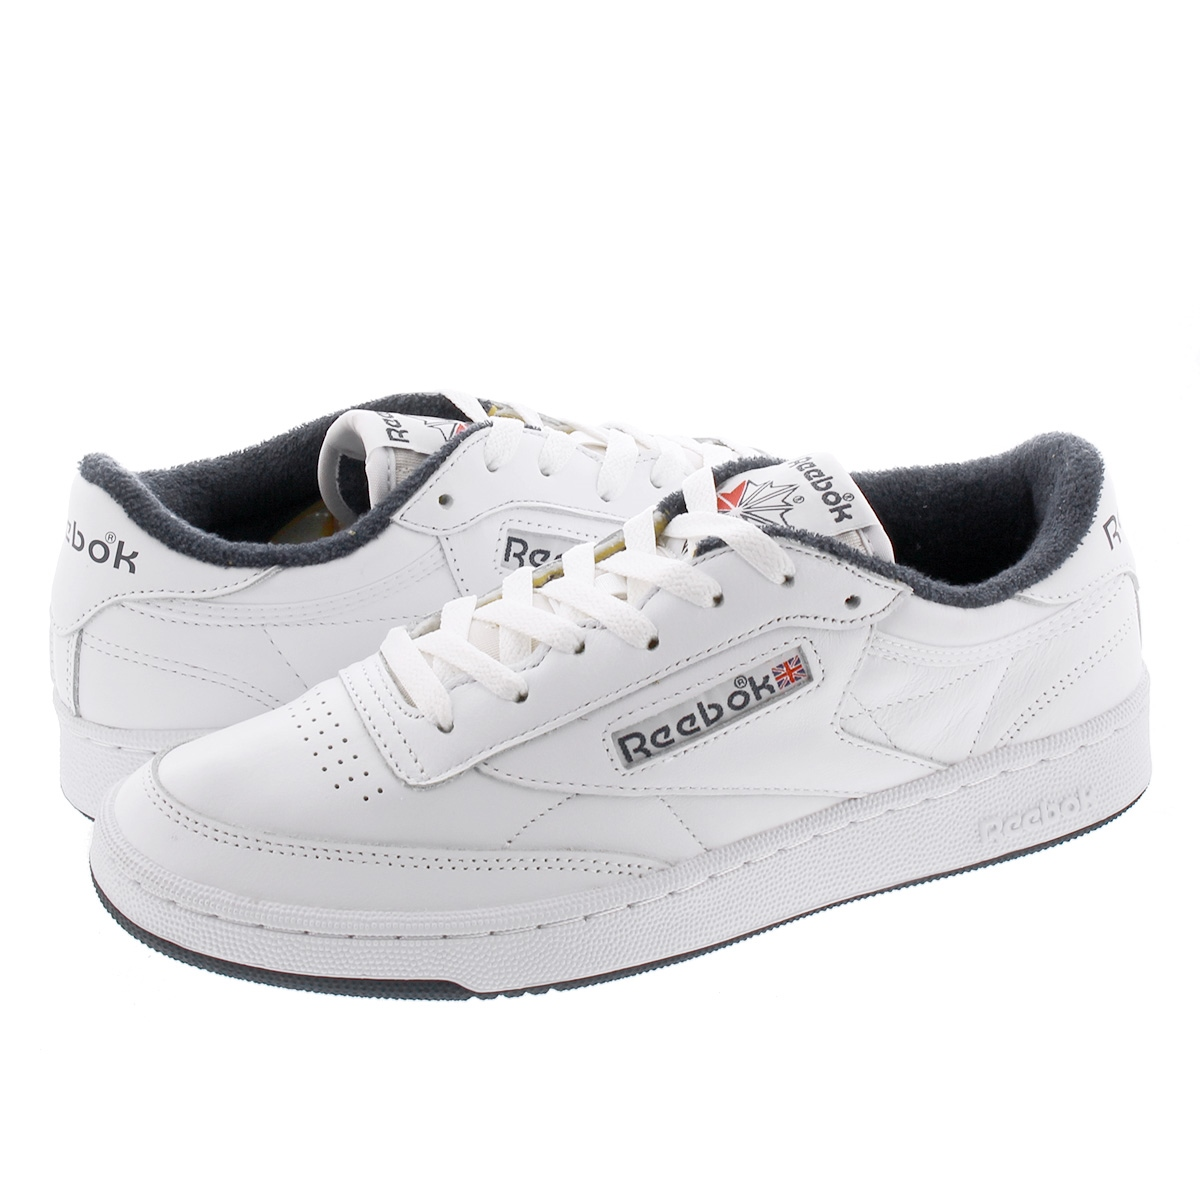 Reebok CLUB C 85 リーボック クラブ C 85 WHITE/WHITE/COLLEGE NAVY fx3433